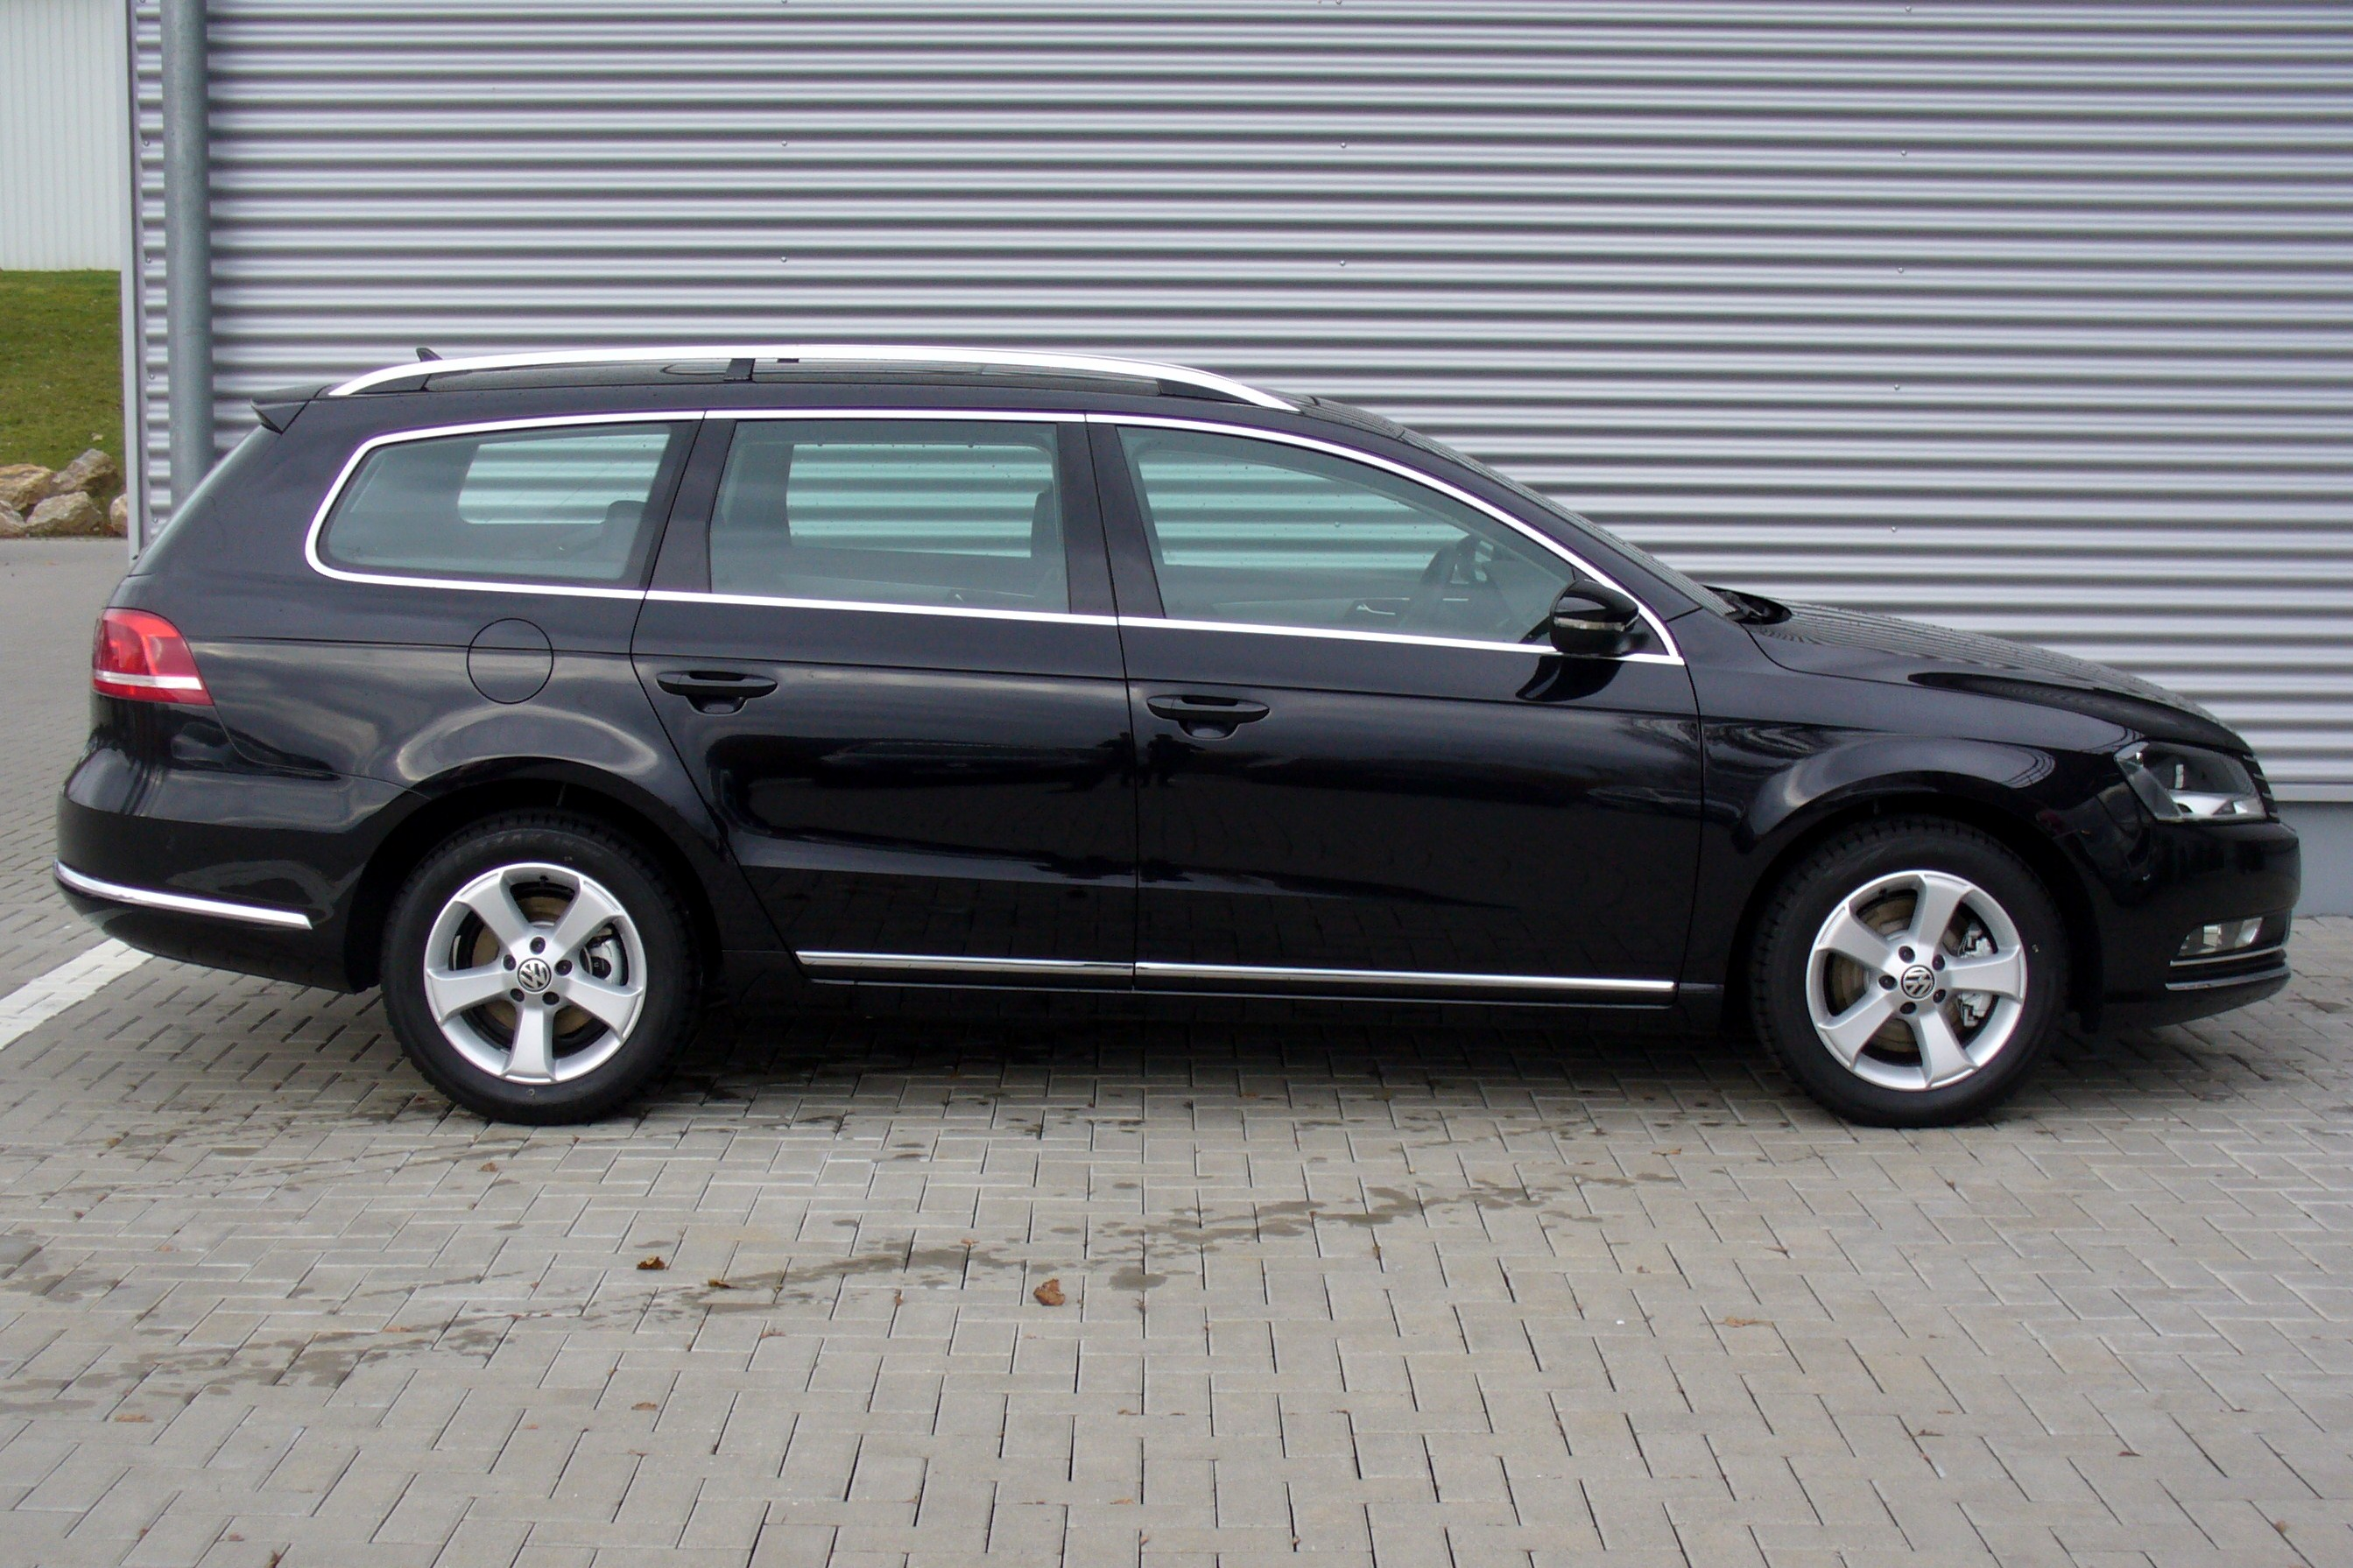 own volkswagen a sport vw purchased recently just cc image t i